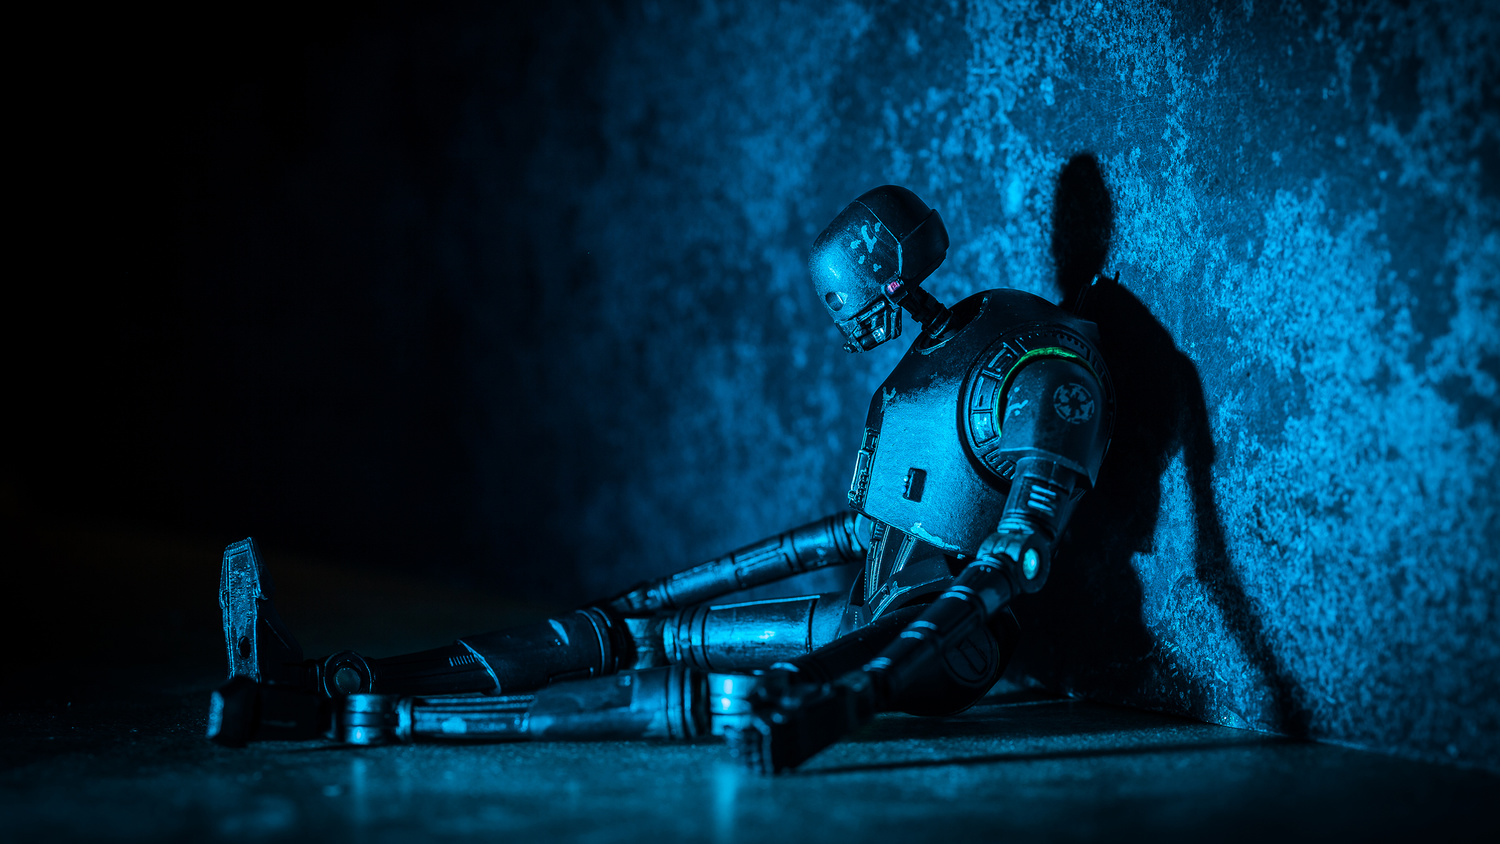 Even droids get depressed... by Phil Wrighton